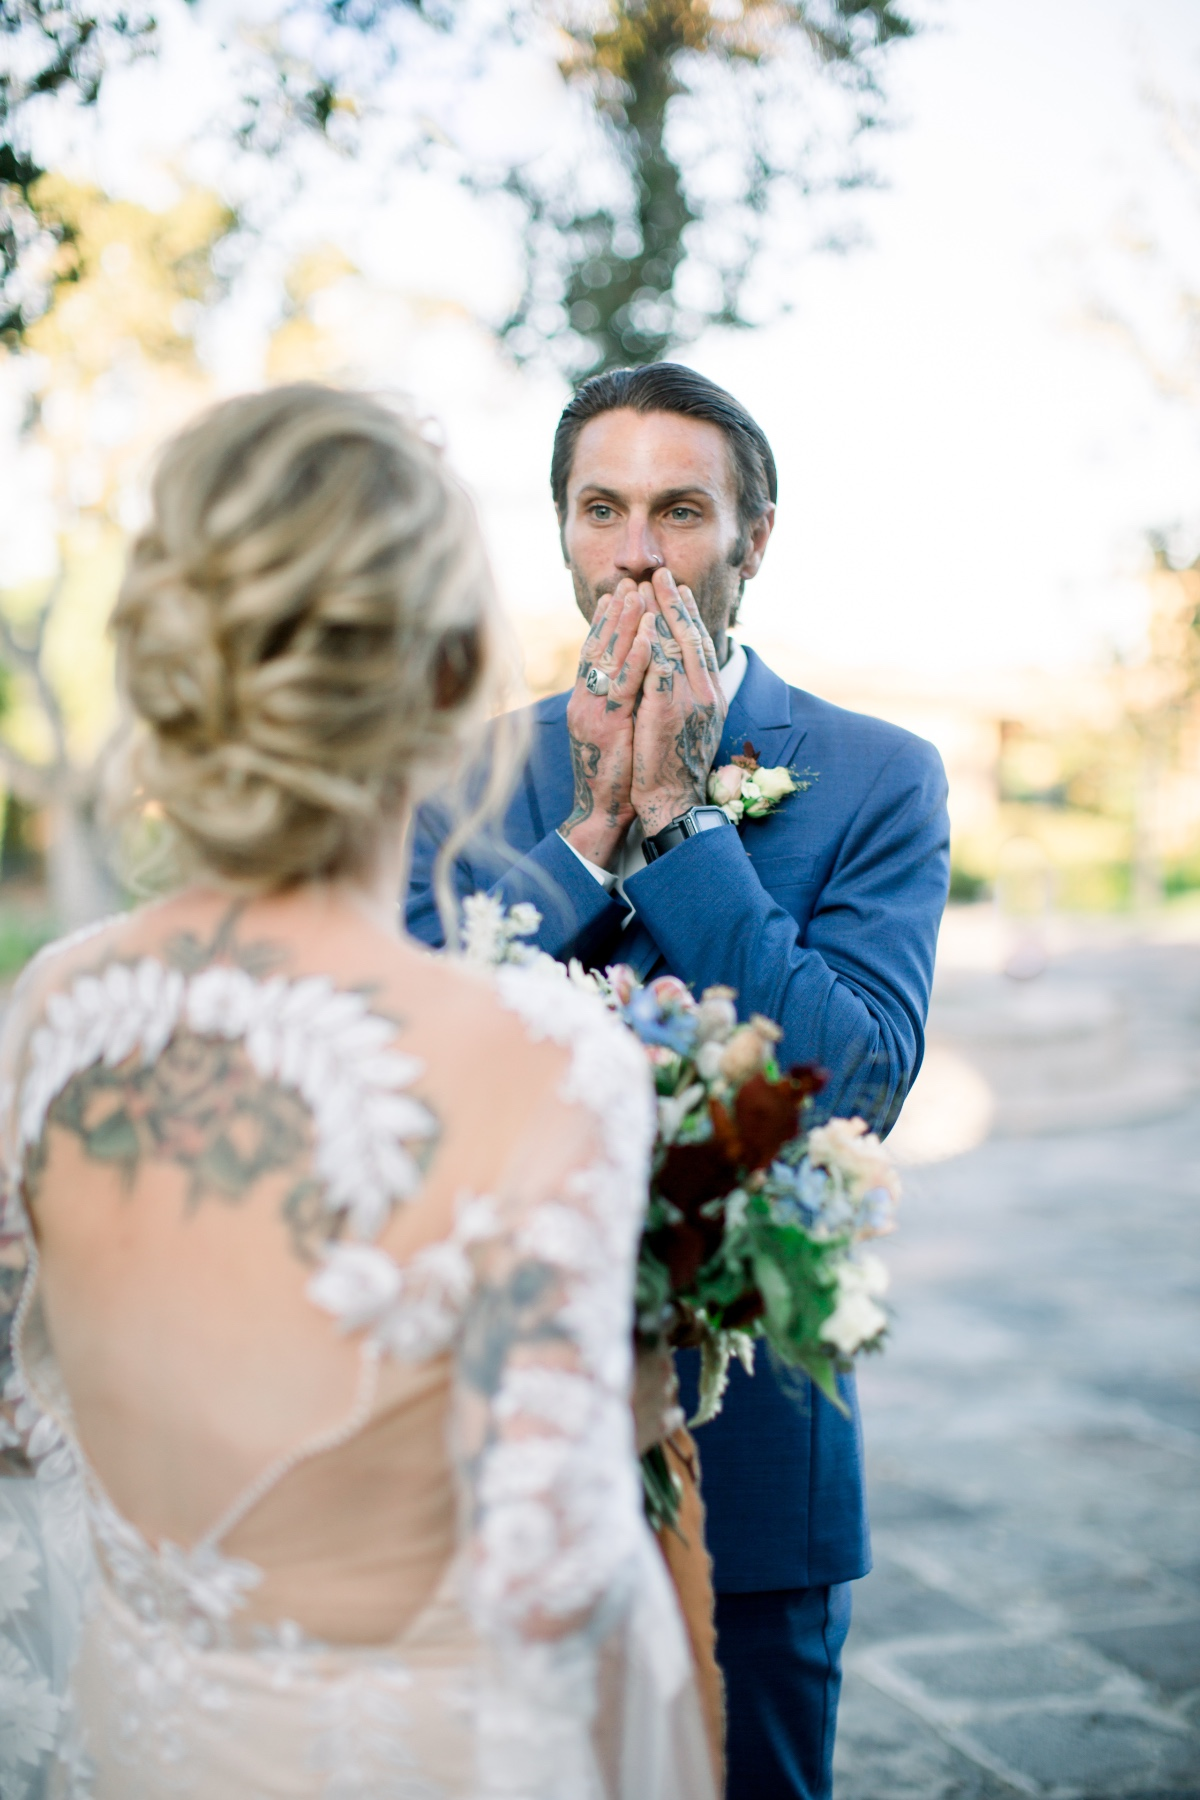 Elegant Micro Wedding in Carmel California